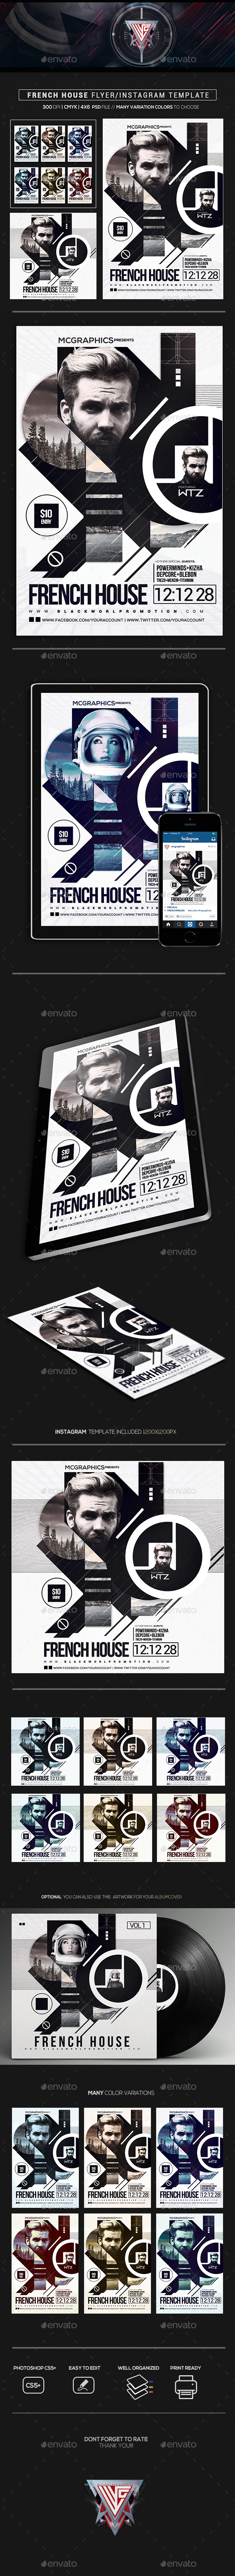 French House Flyer/Instagram Template - Events Flyers